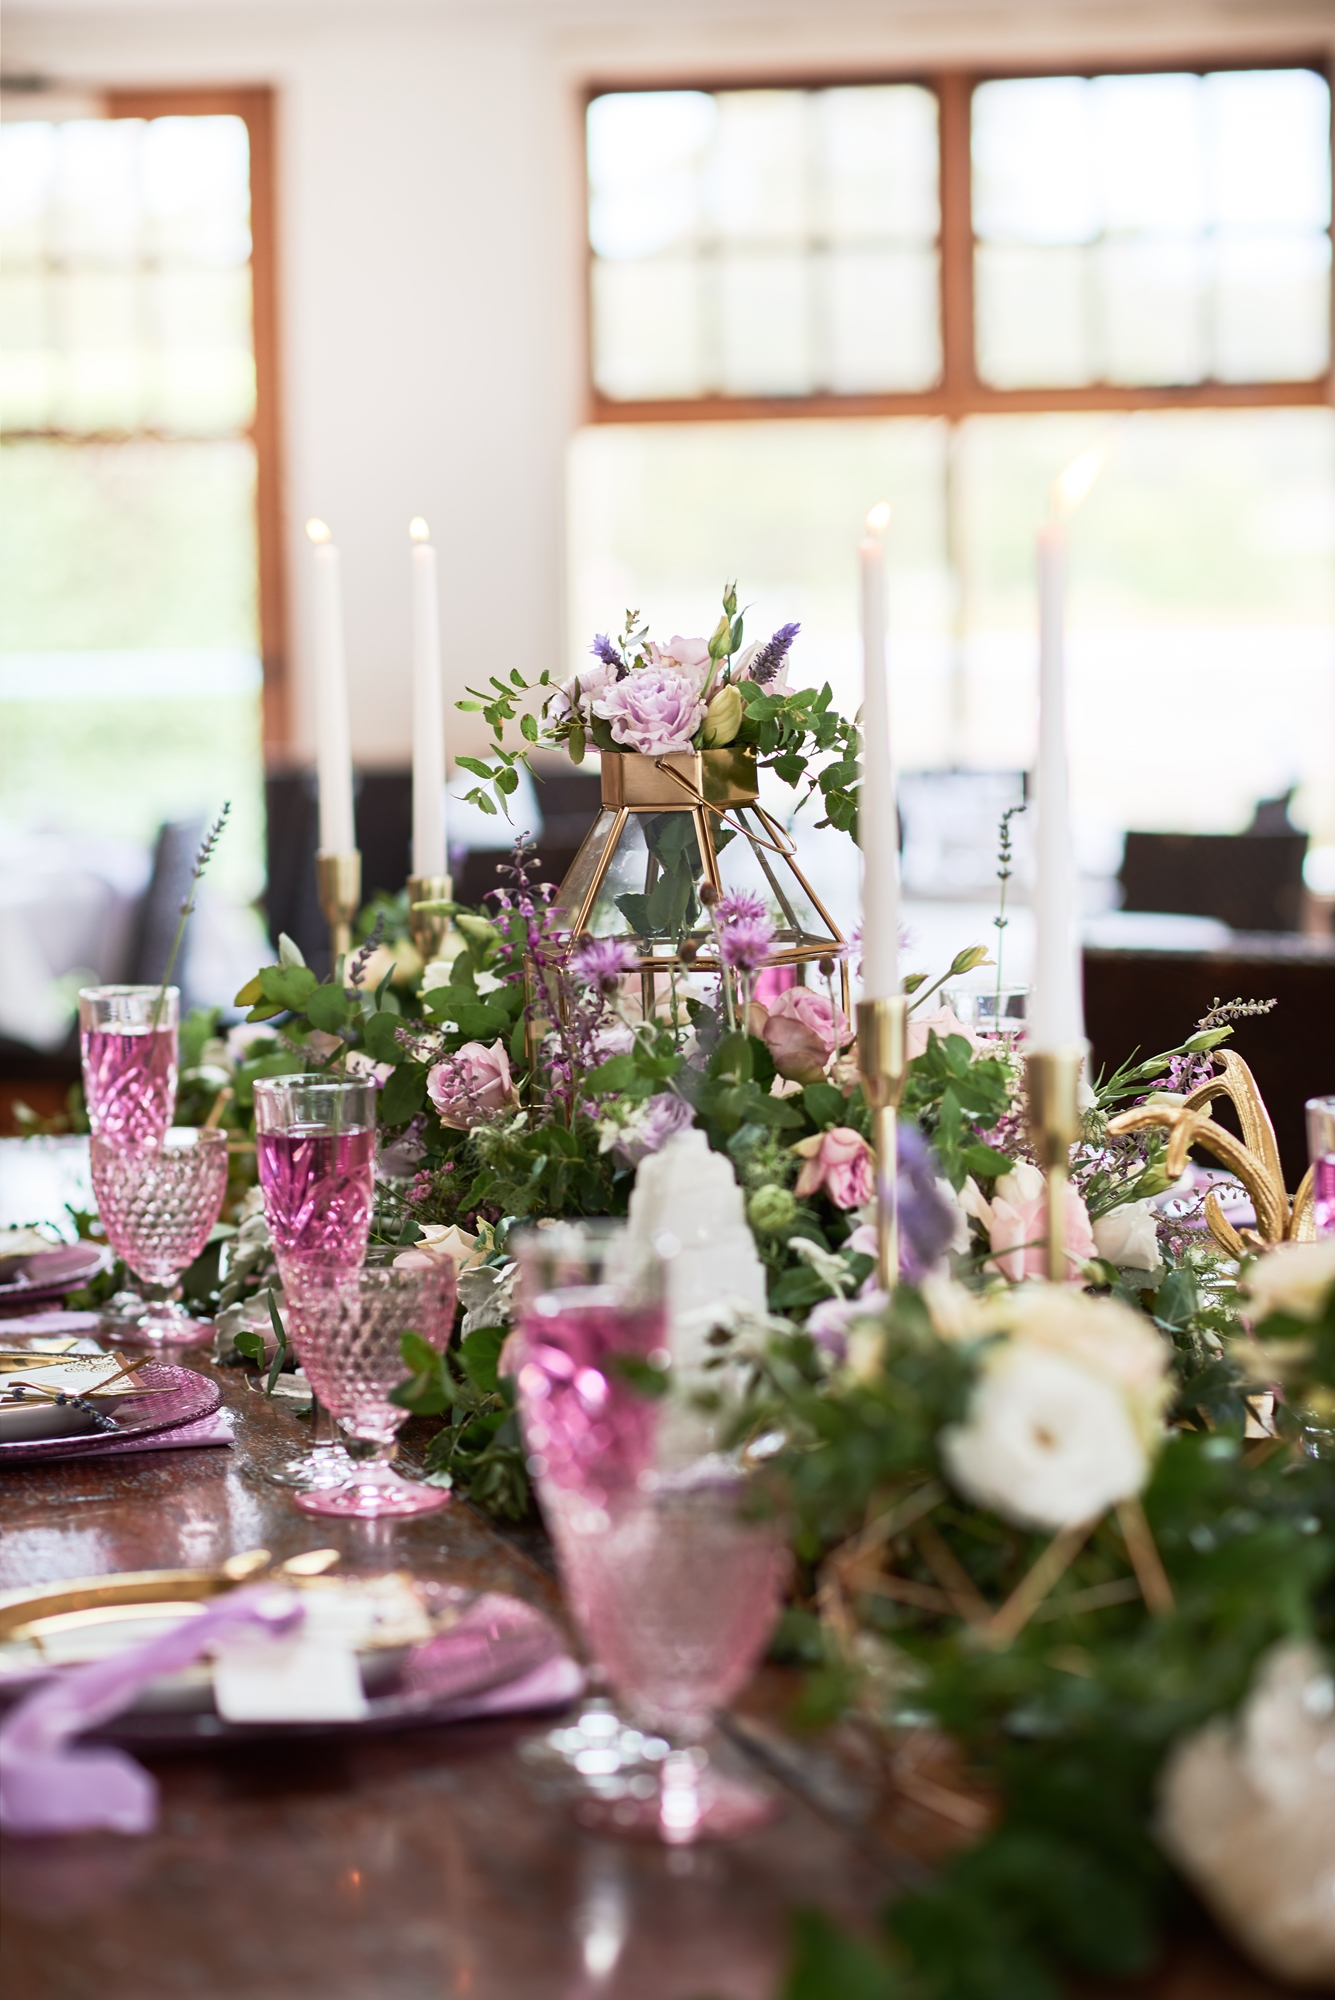 Victoria-Australia-luxury-wedding-inspiration-Sault - Inside table00117.jpg